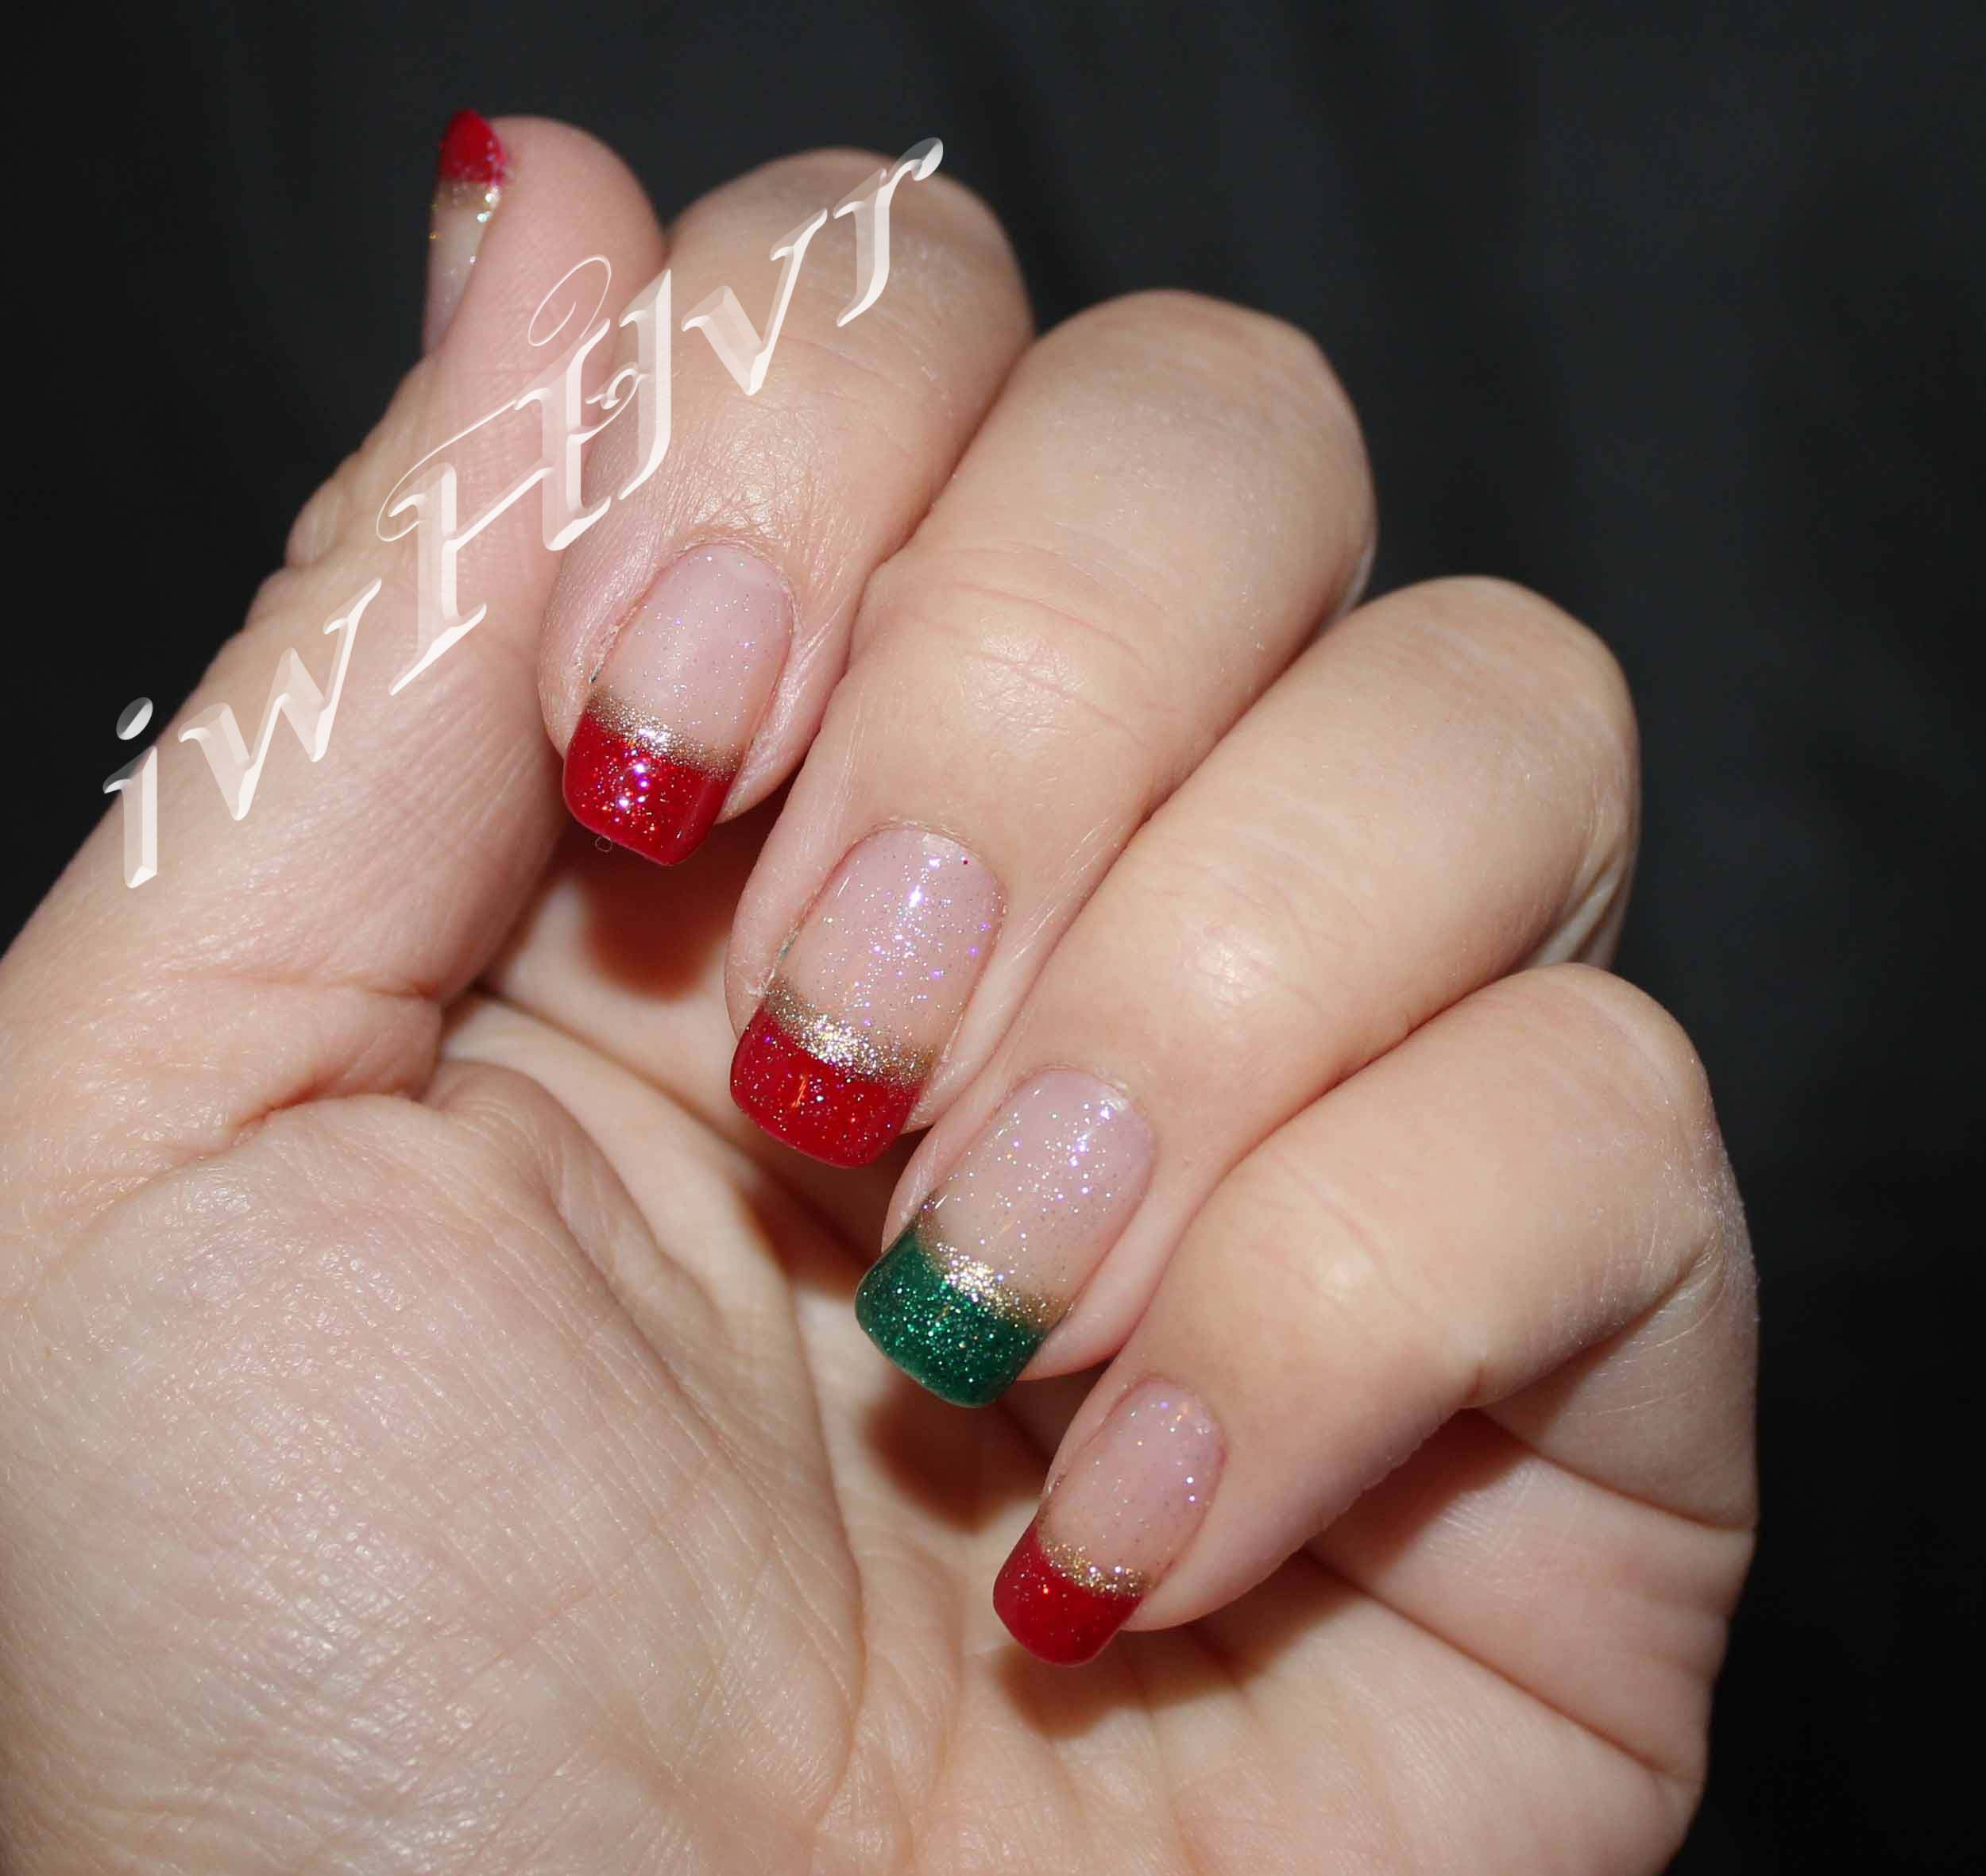 IWHLVR Christmas nail art funky french manicure | IWHLVR Nail Art ...